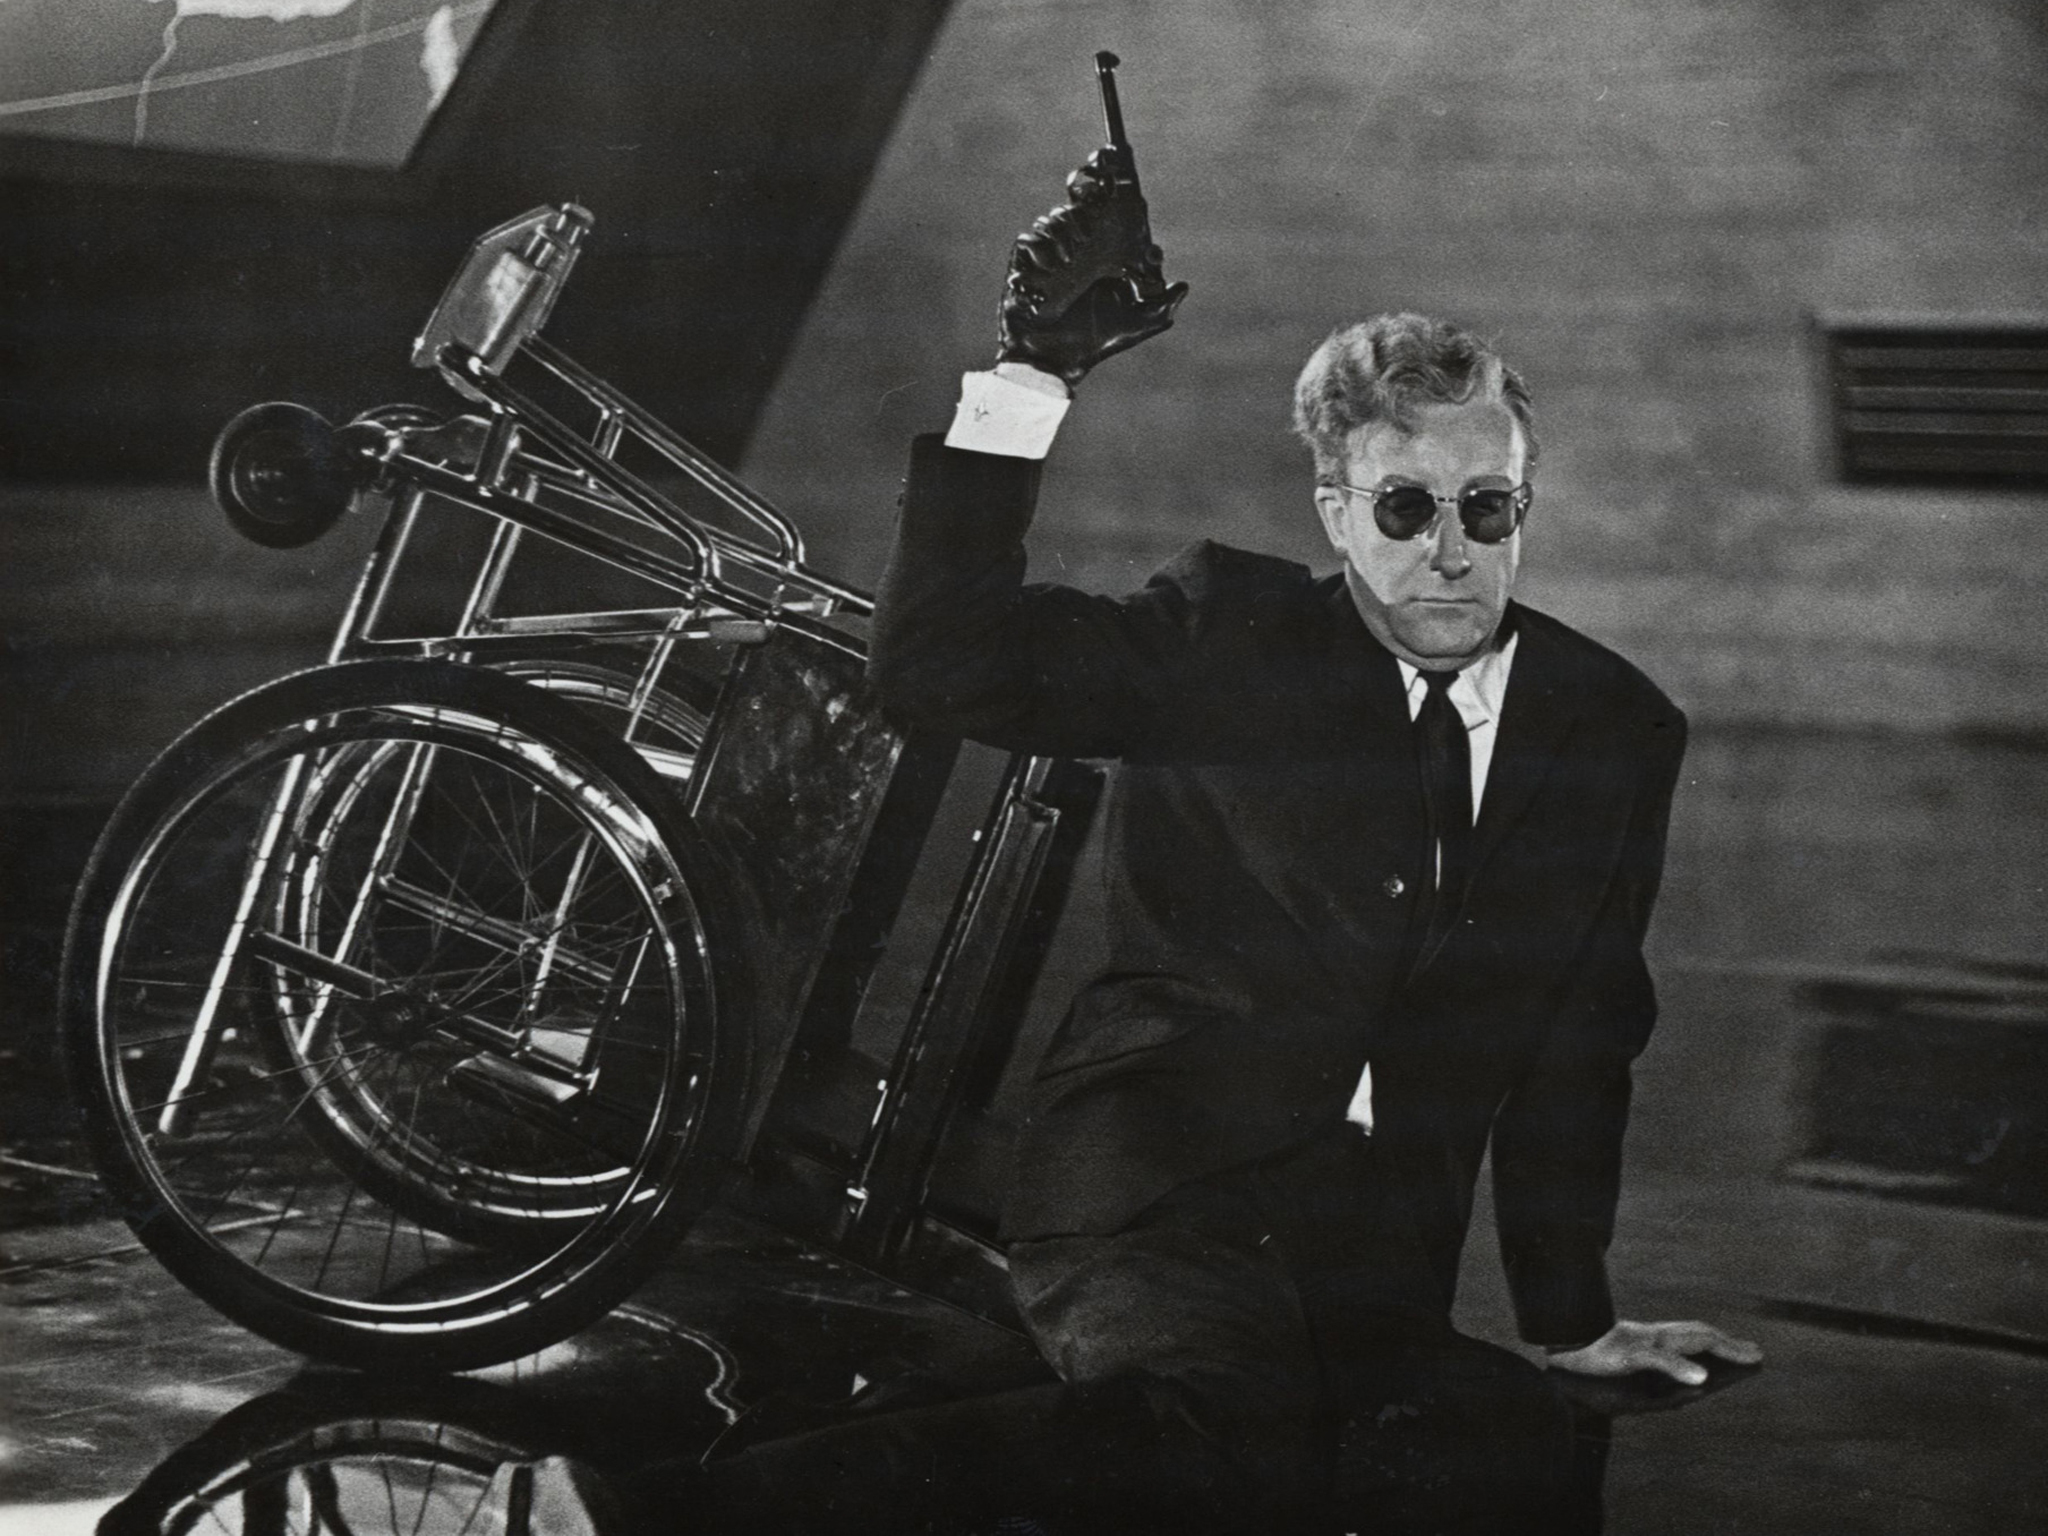 Dr Strangelove: Or, How I Learned To Stop Worrying And Love The Bomb (1964)